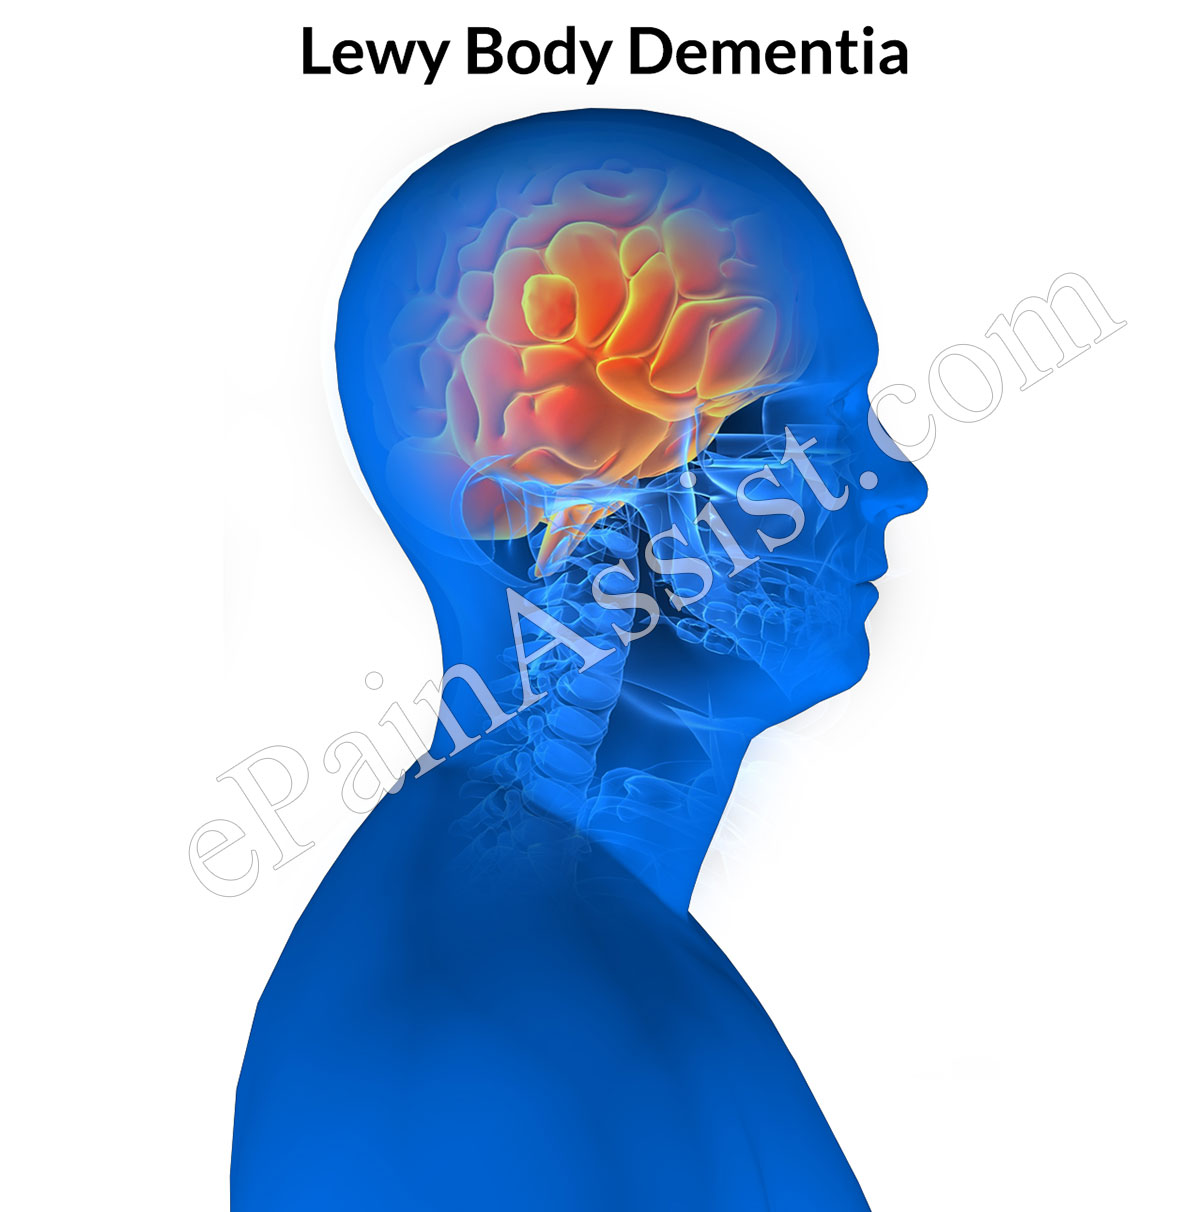 lewy body dementia Lewy body dementia: diagnosis, management and future directions bradley f boeve, md divisions of behavioral neurology and movement disorders.